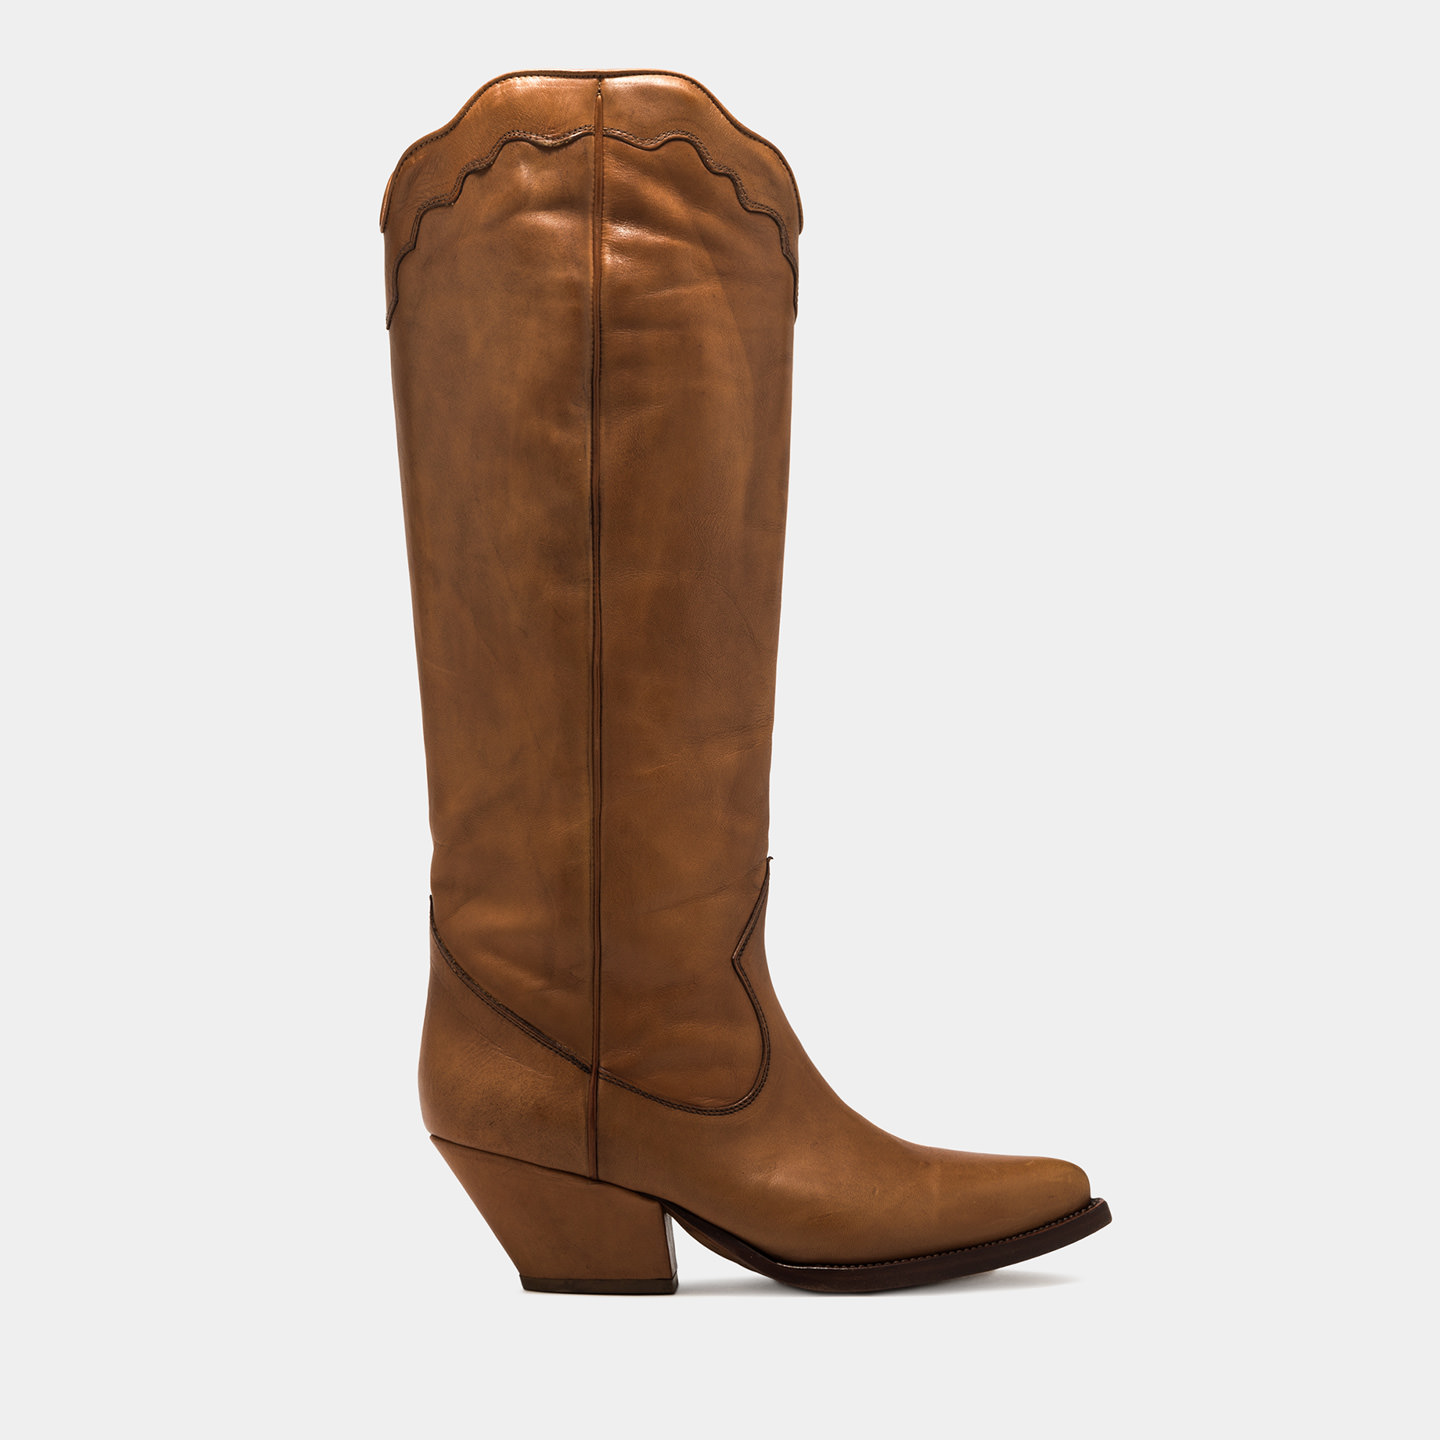 BUTTERO: ELISE HIGH TOP BOOTS IN NATURAL BROWN LEATHER